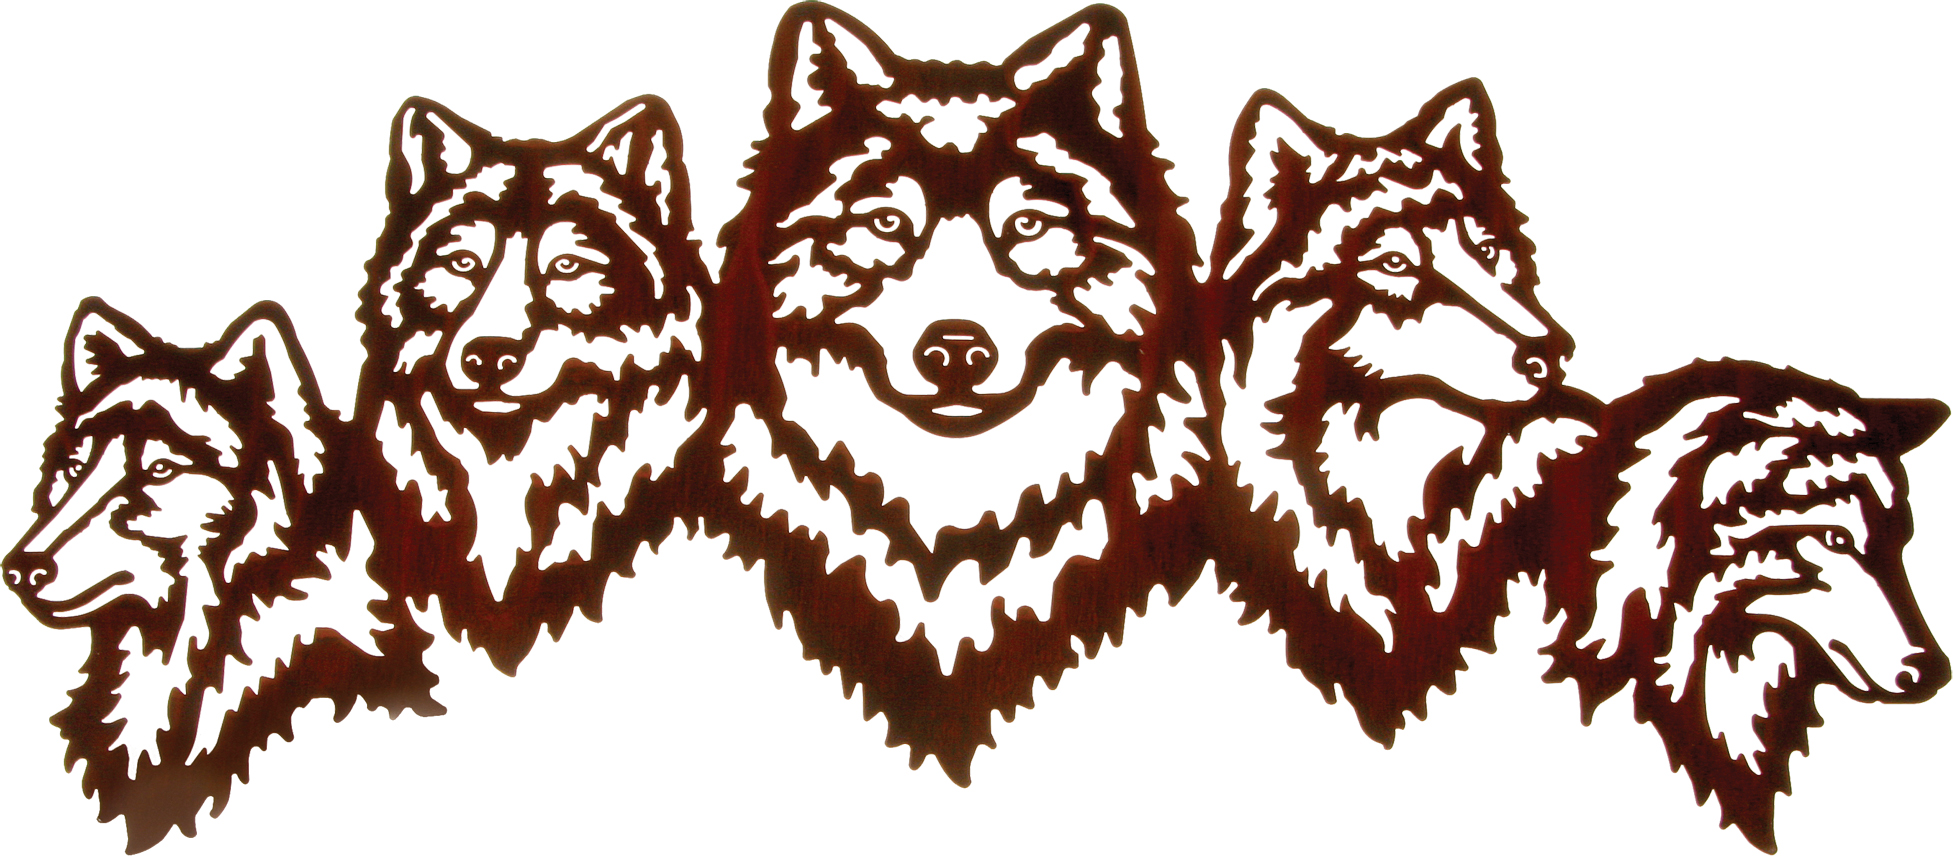 Wolf Wall Art wolf wall art, wolf wall hangings, metal wall hangings of wolves